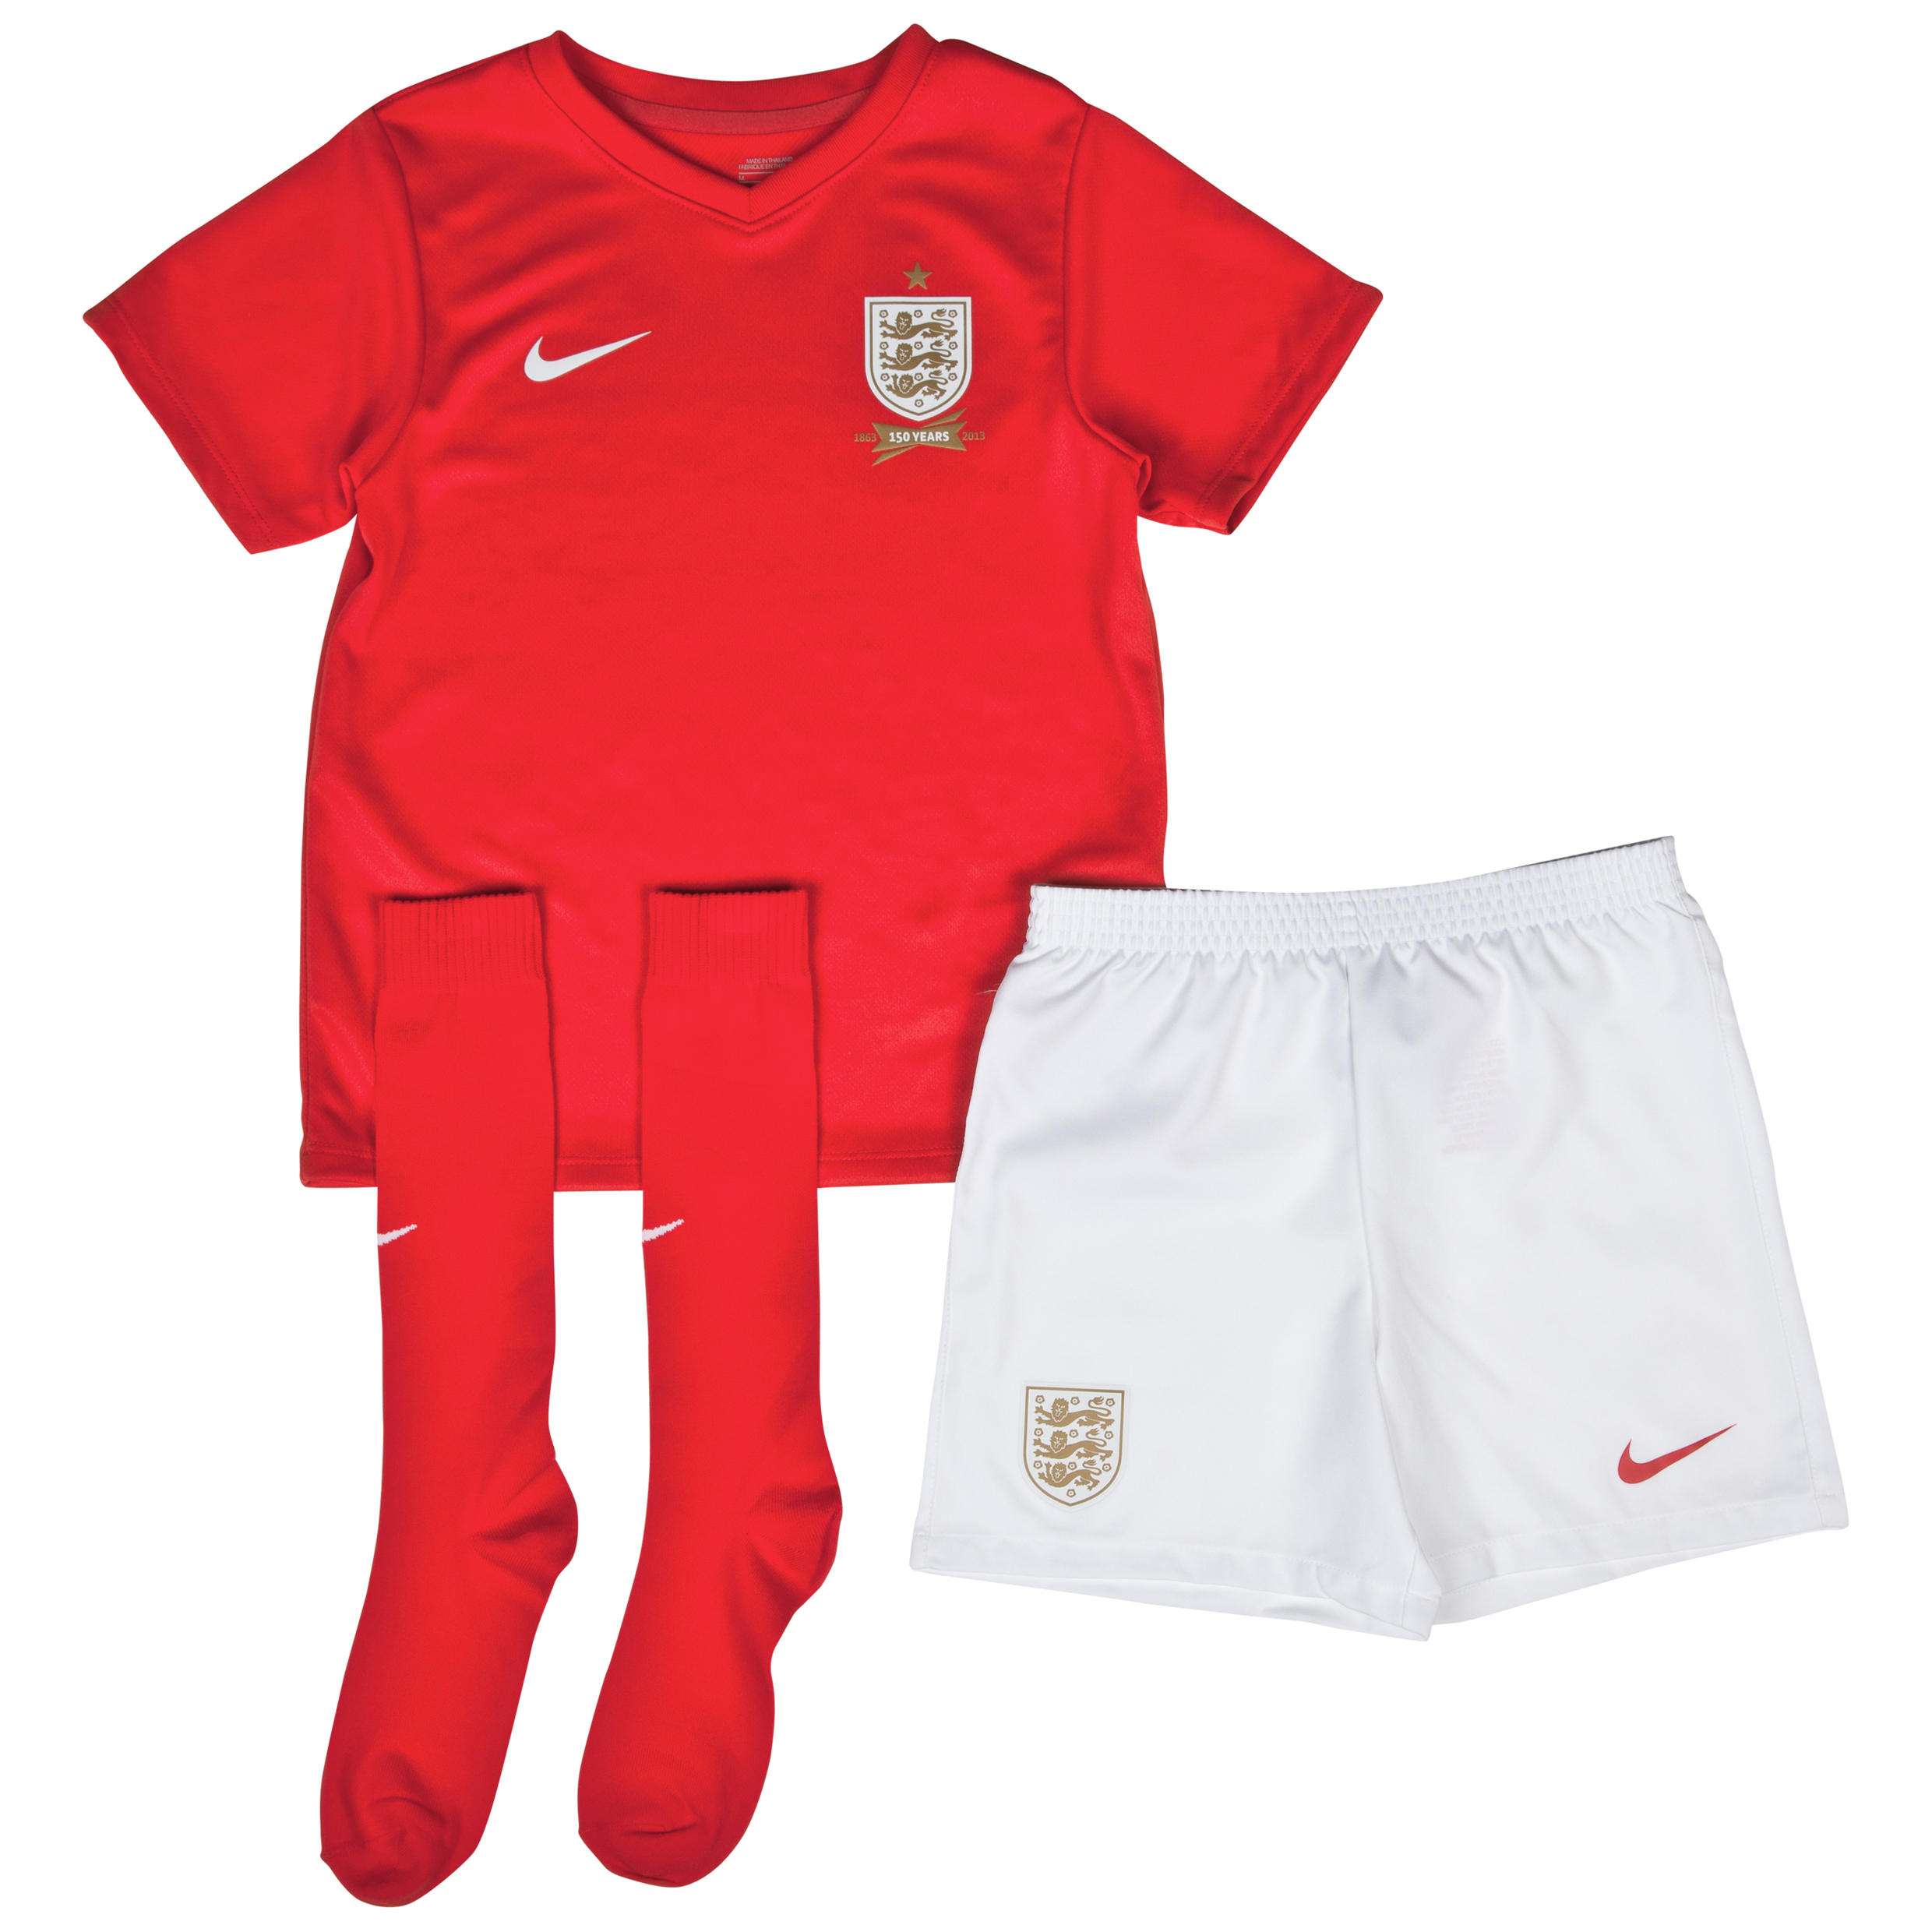 England Away Kit 2013/14 Little Boys Red